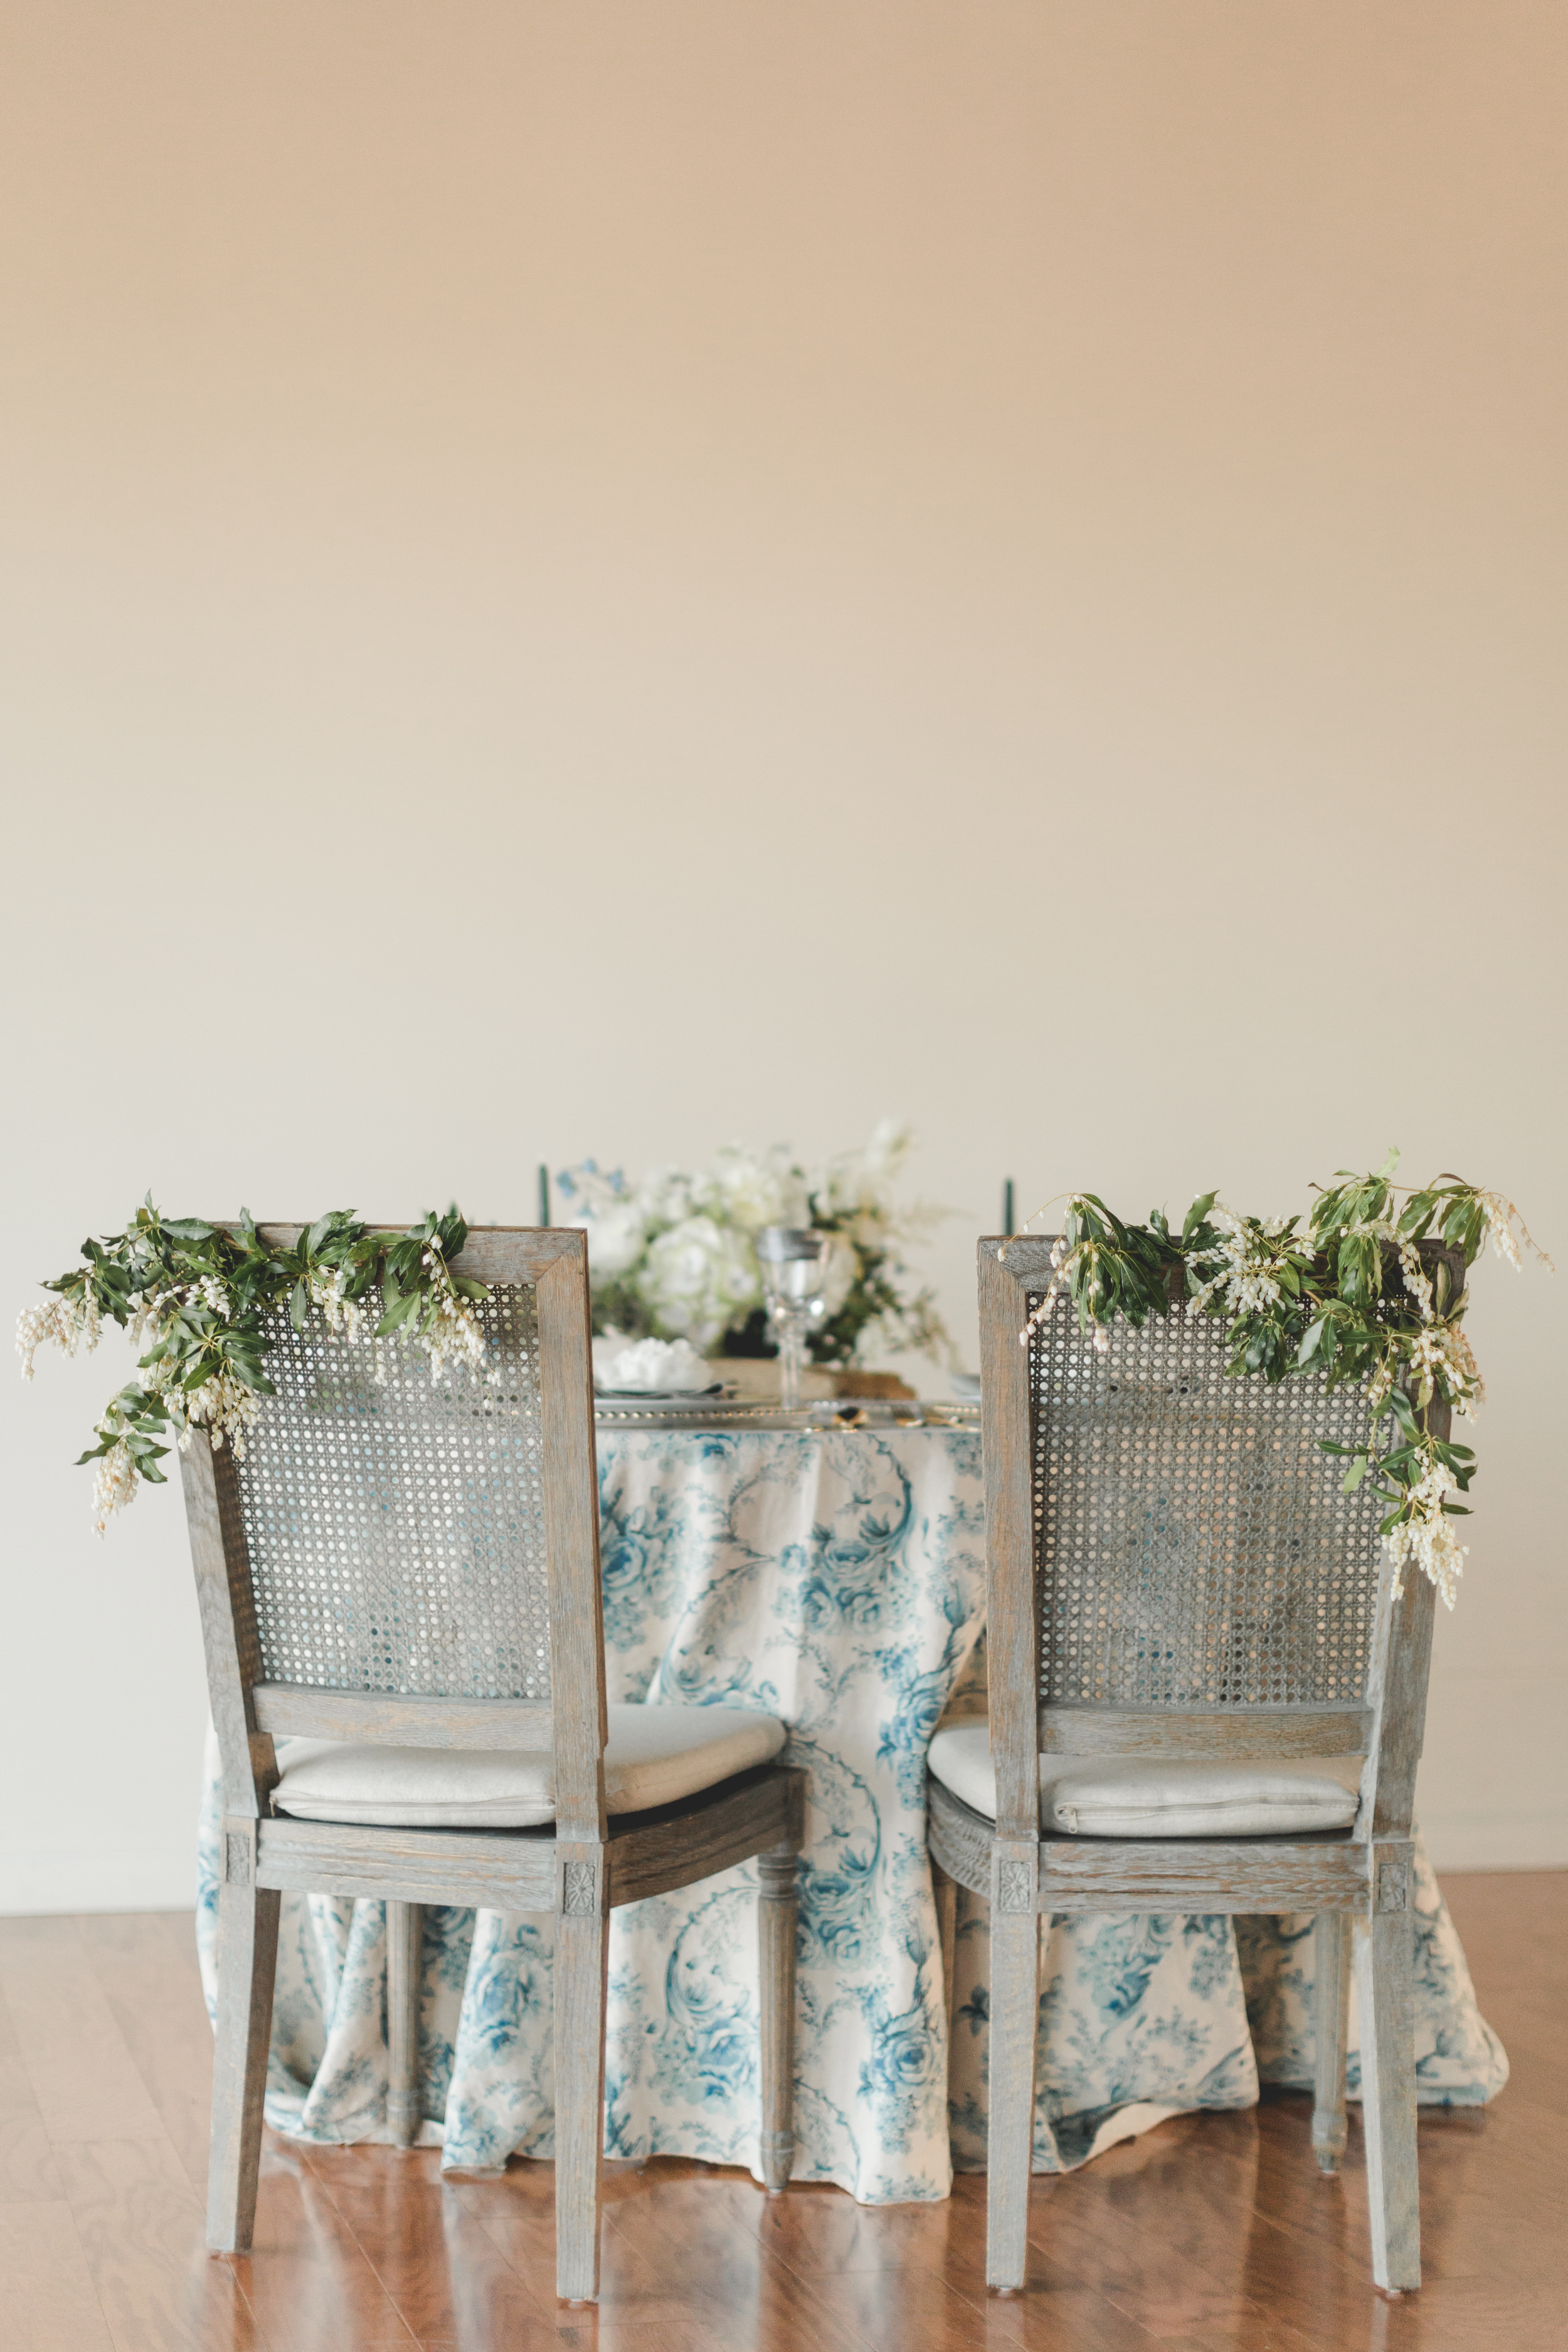 Whaling_Museum_Styled_Shoot_sweethearttable_4-19-16-17.jpg